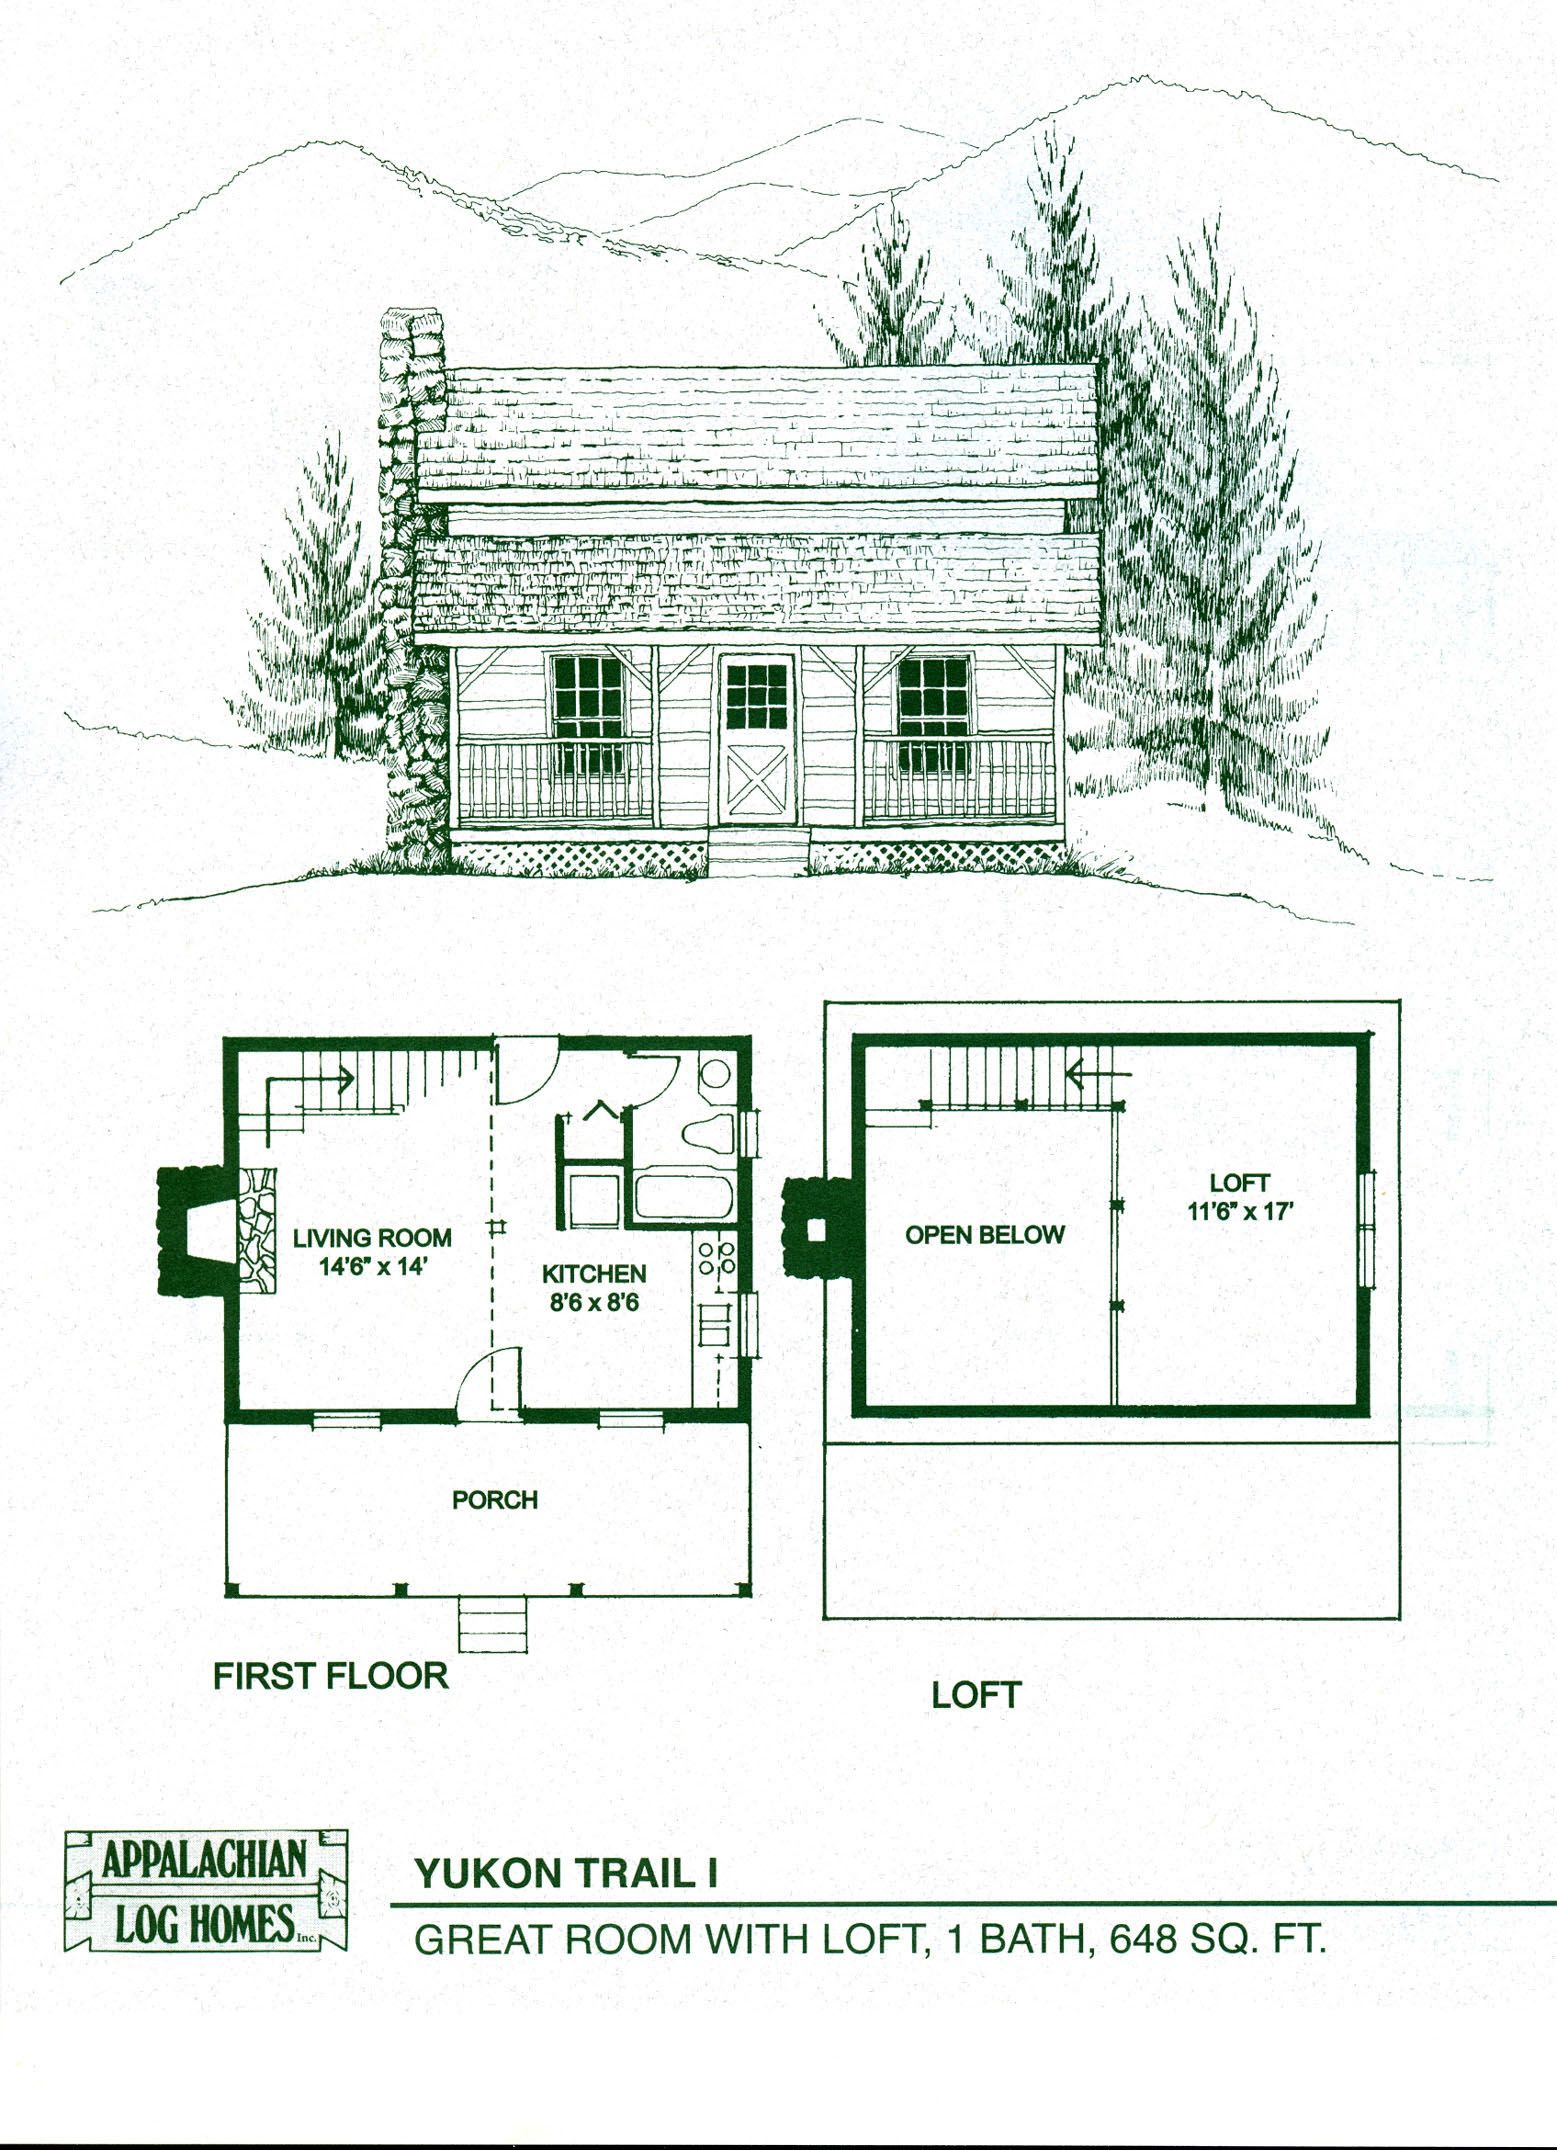 Log home floor plans log cabin kits appalachian log for Small log house plans